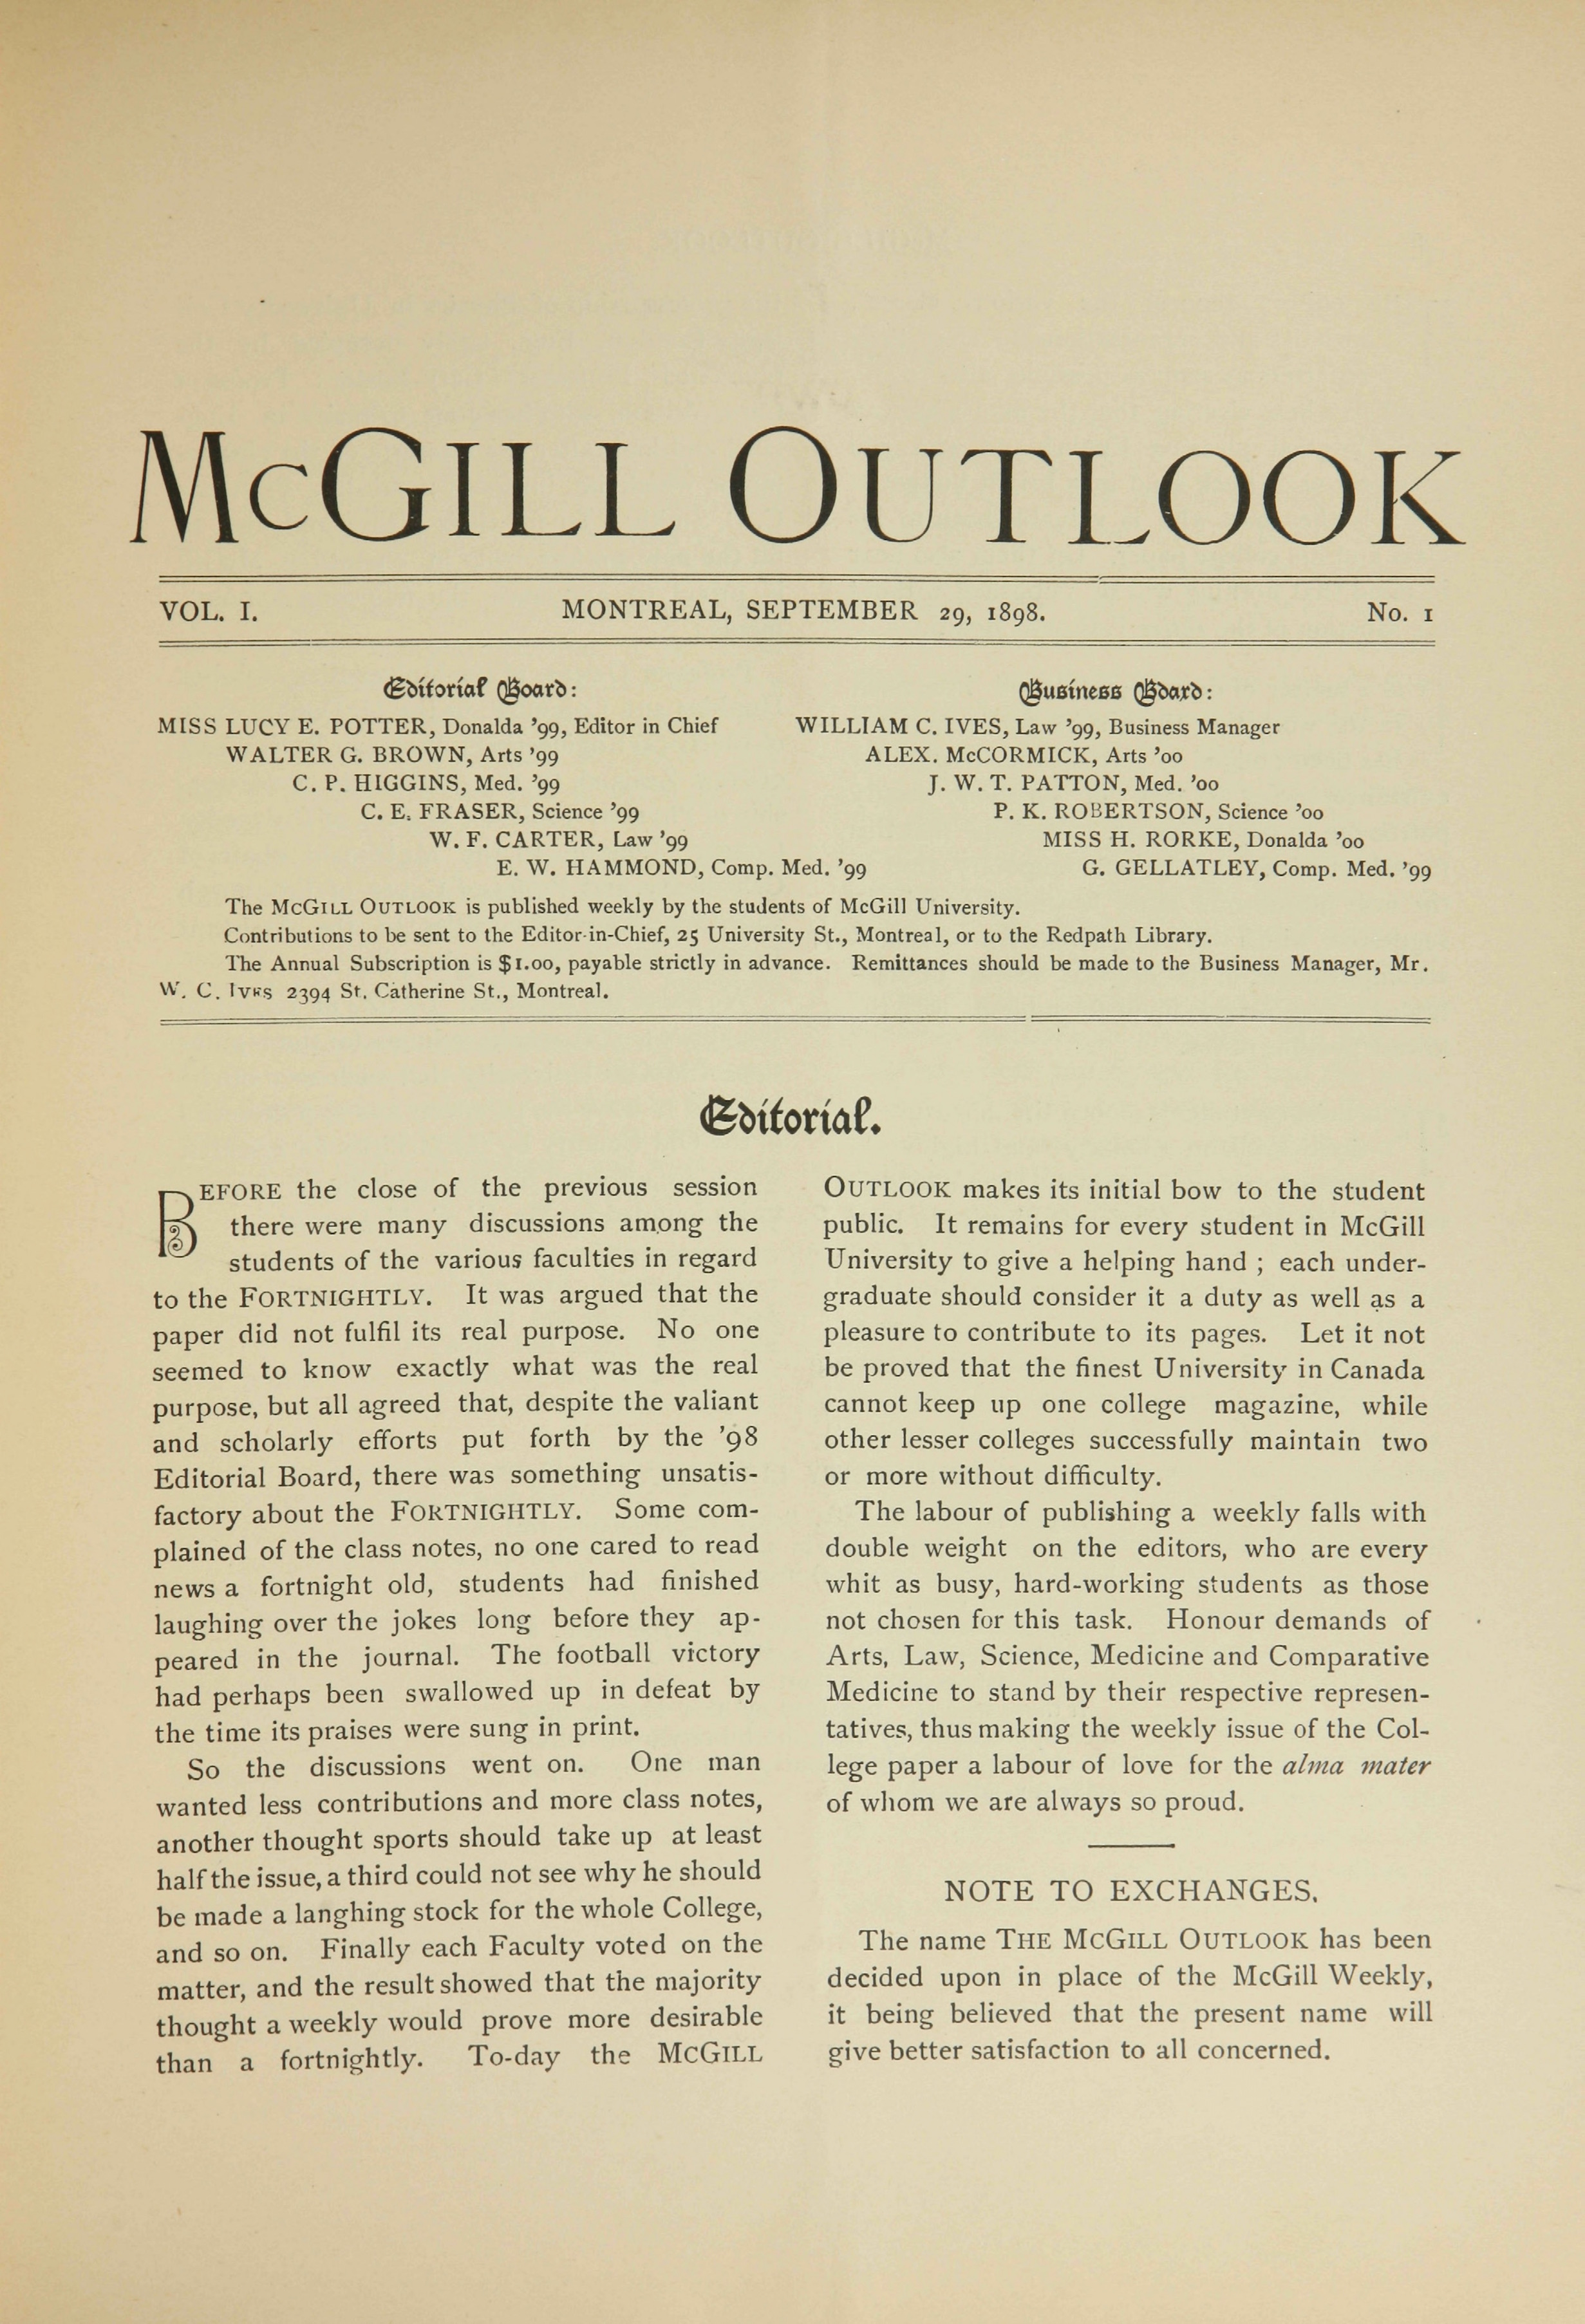 Front page of McGill Outlook Vol. 01 No. 01: September 29, 1898